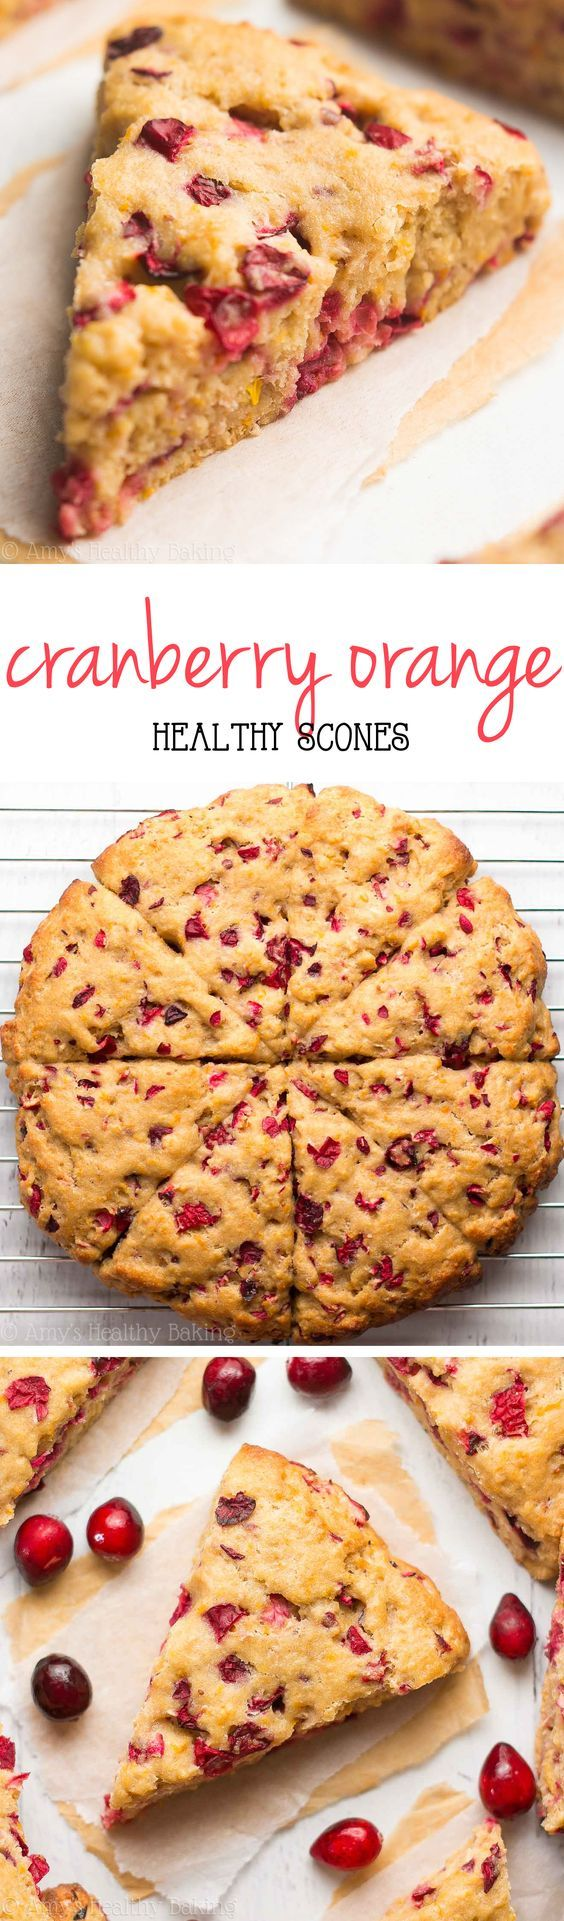 Healthy Cranberry Orange Scones -- so tender and ready in 30 minutes! Nearly 5g of protein too!